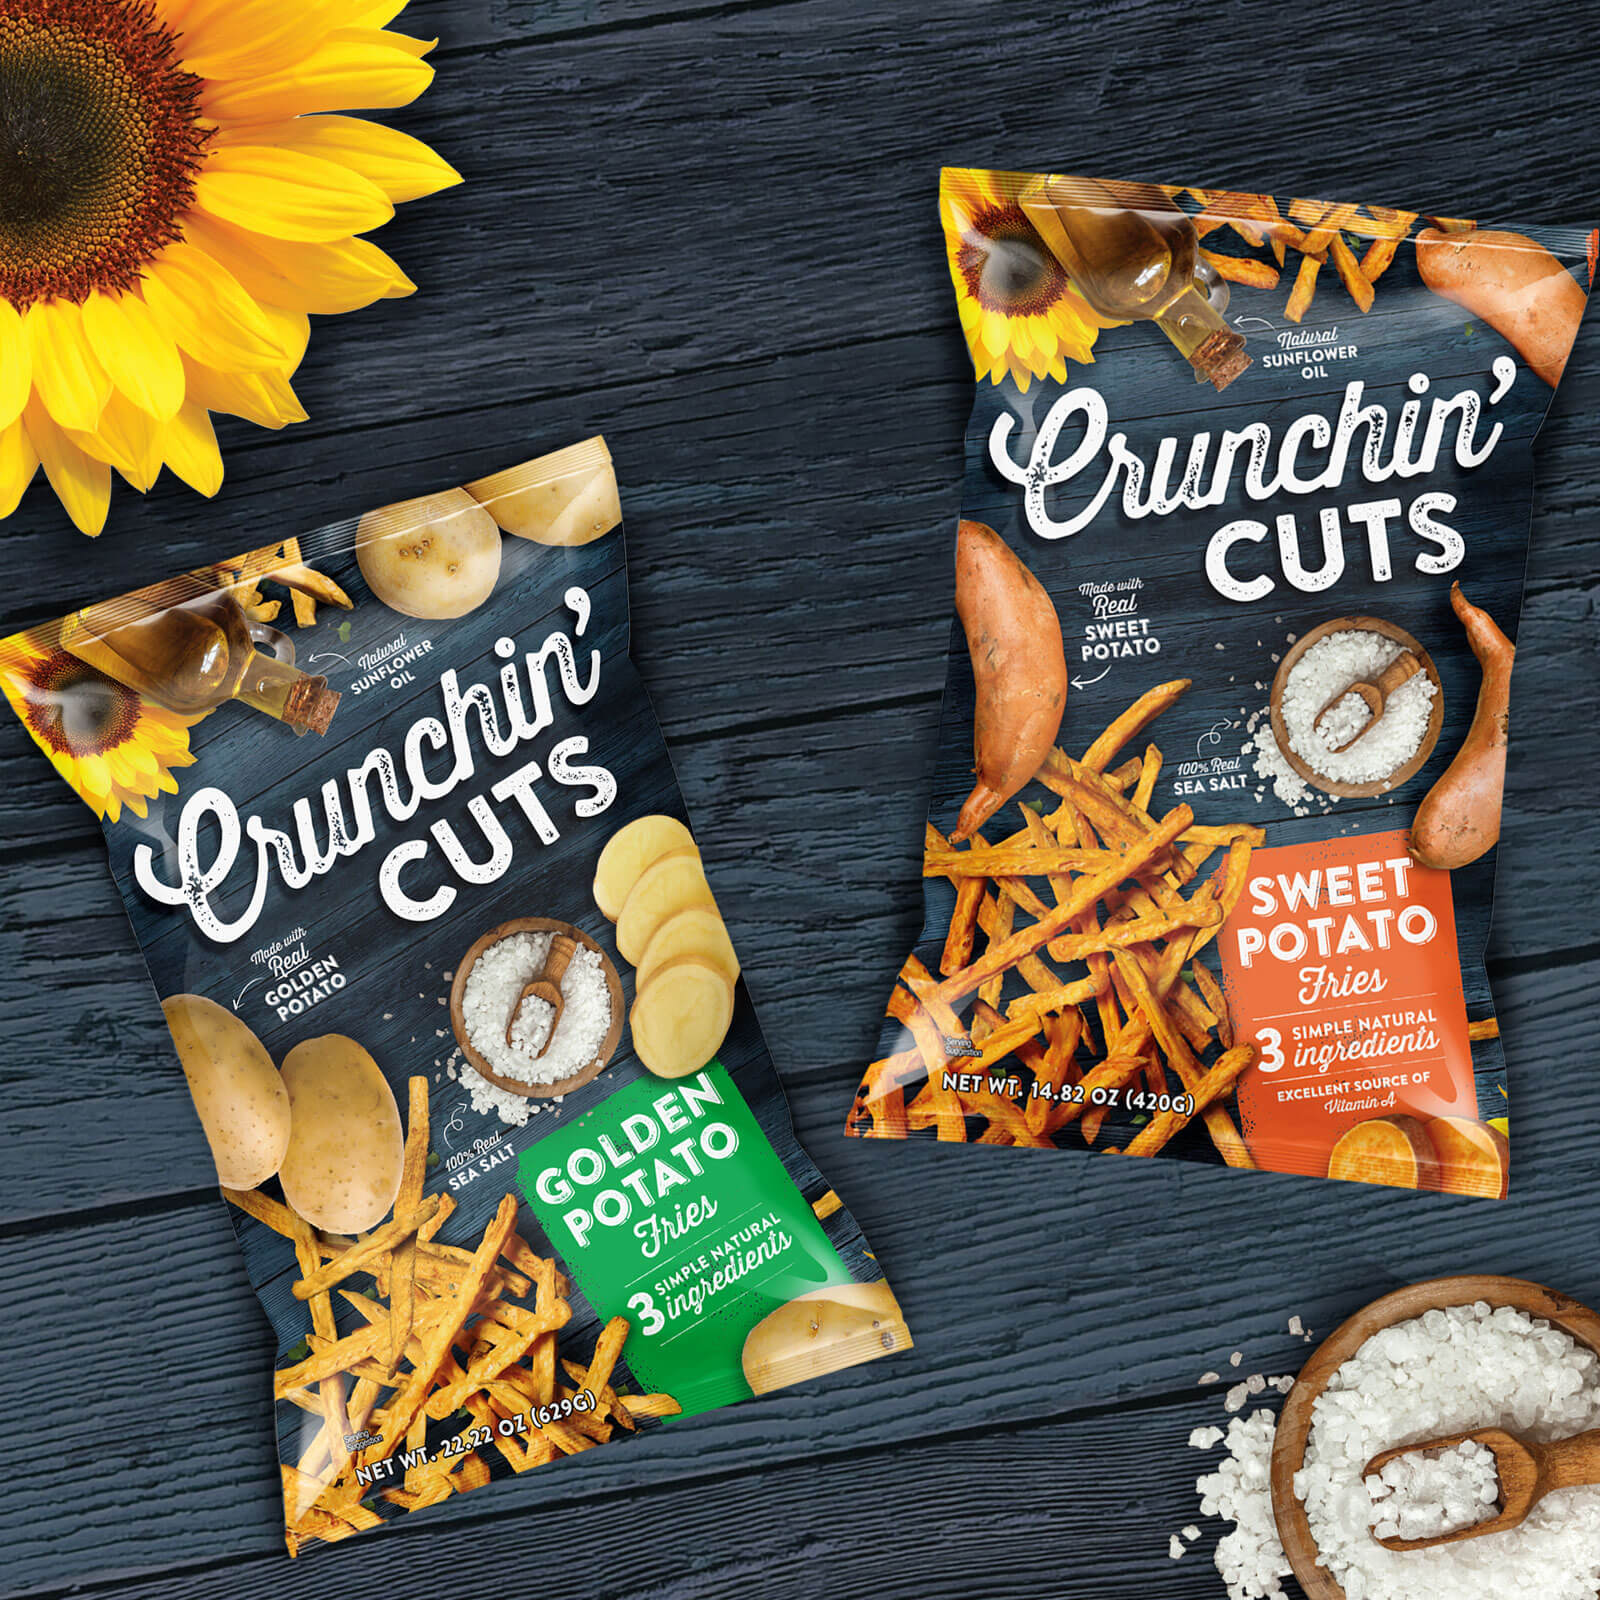 Crunchin Cuts - New Snacks with only 3 REAL ingredients